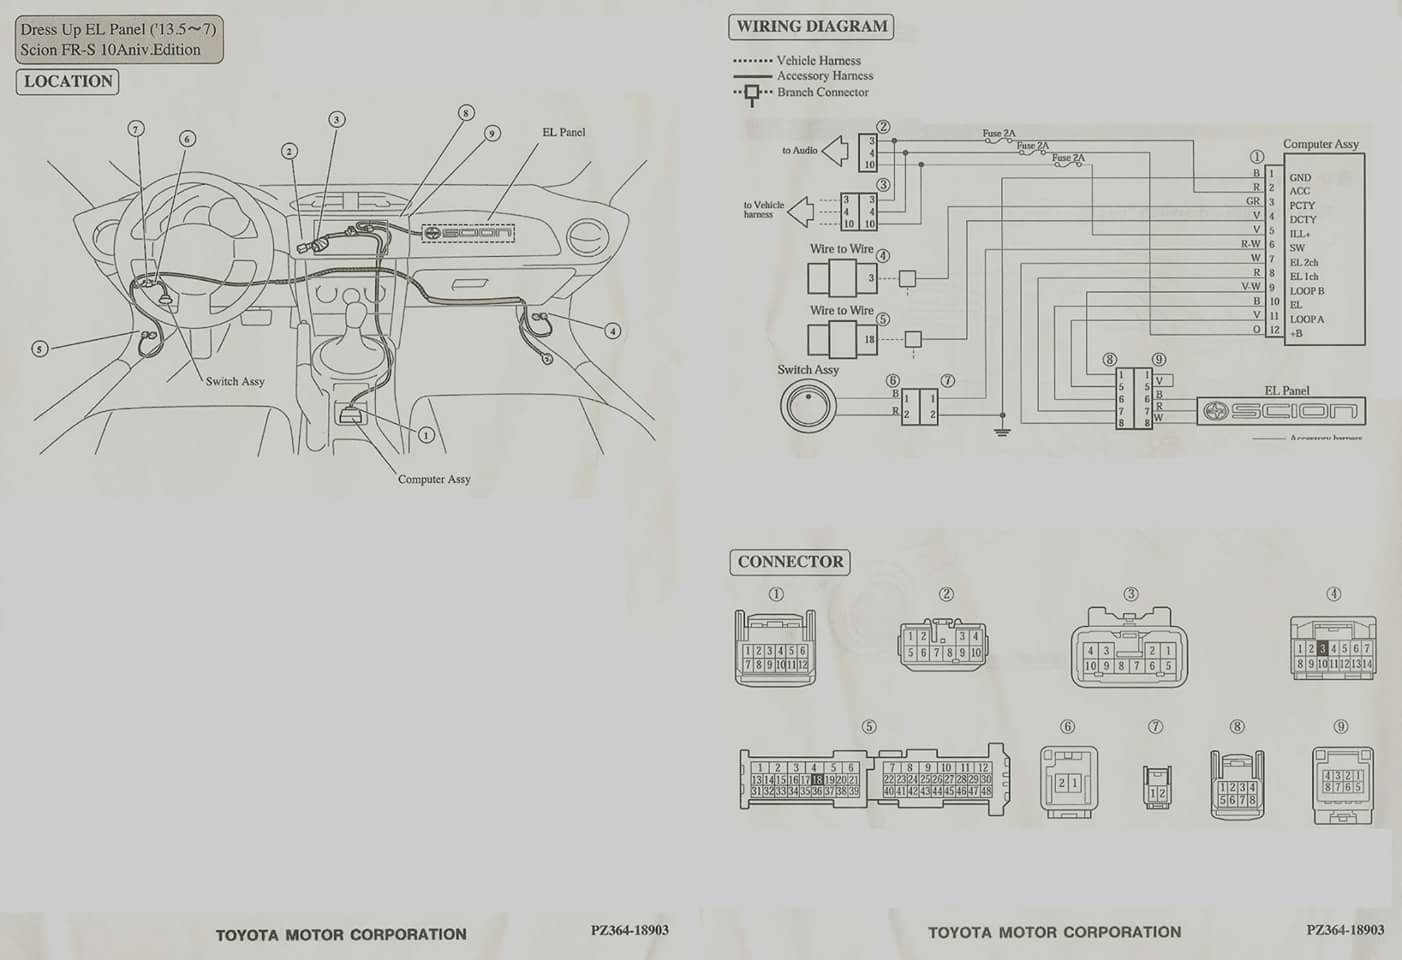 Scion Frs Stereo Wiring Diagram. Scion. Auto Wiring Diagram